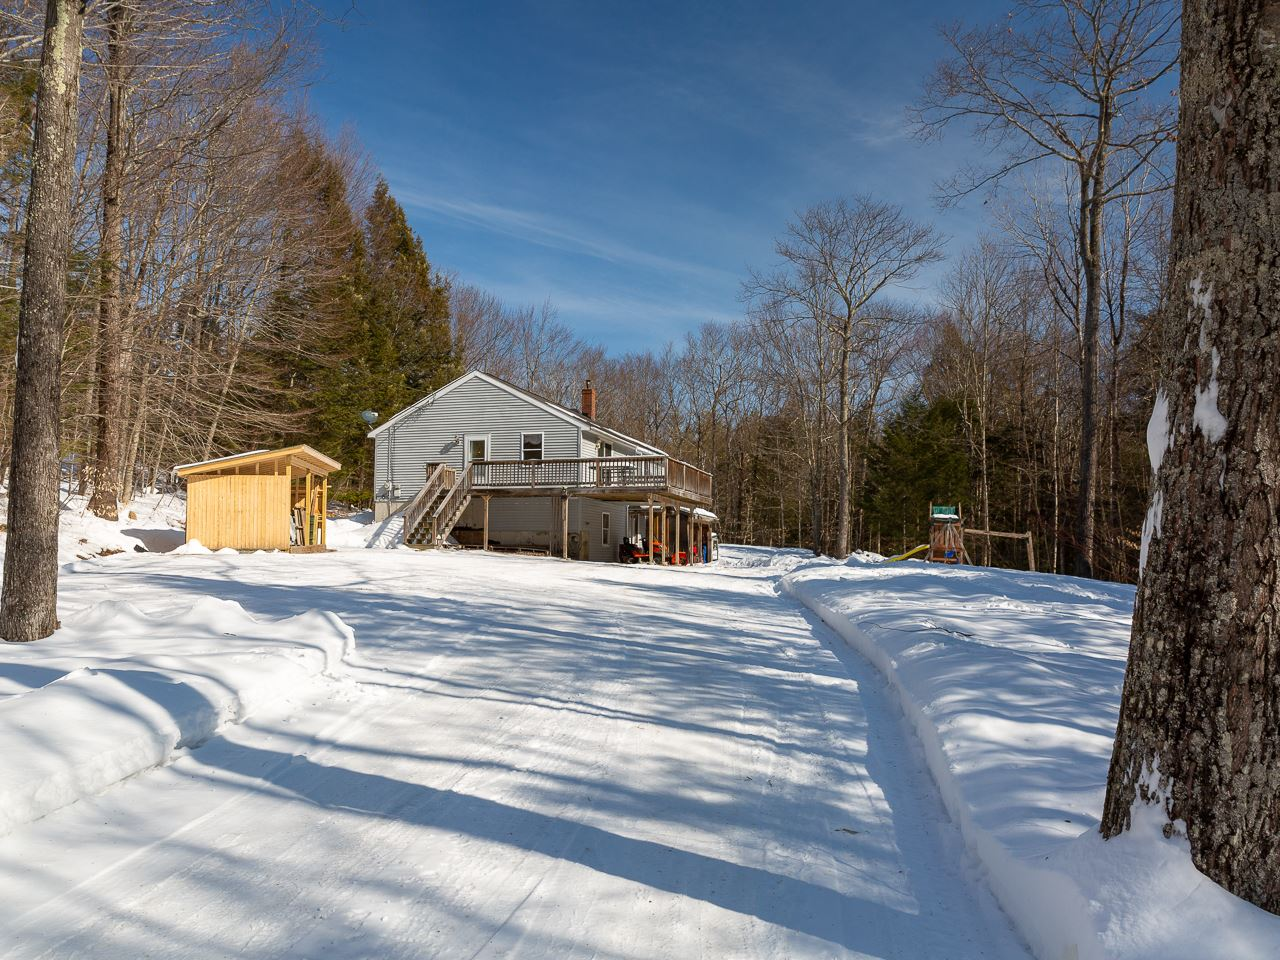 VILLAGE OF GILMANTON IRON WORKS IN TOWN OF GILMANTON NH  Home for sale $249,900